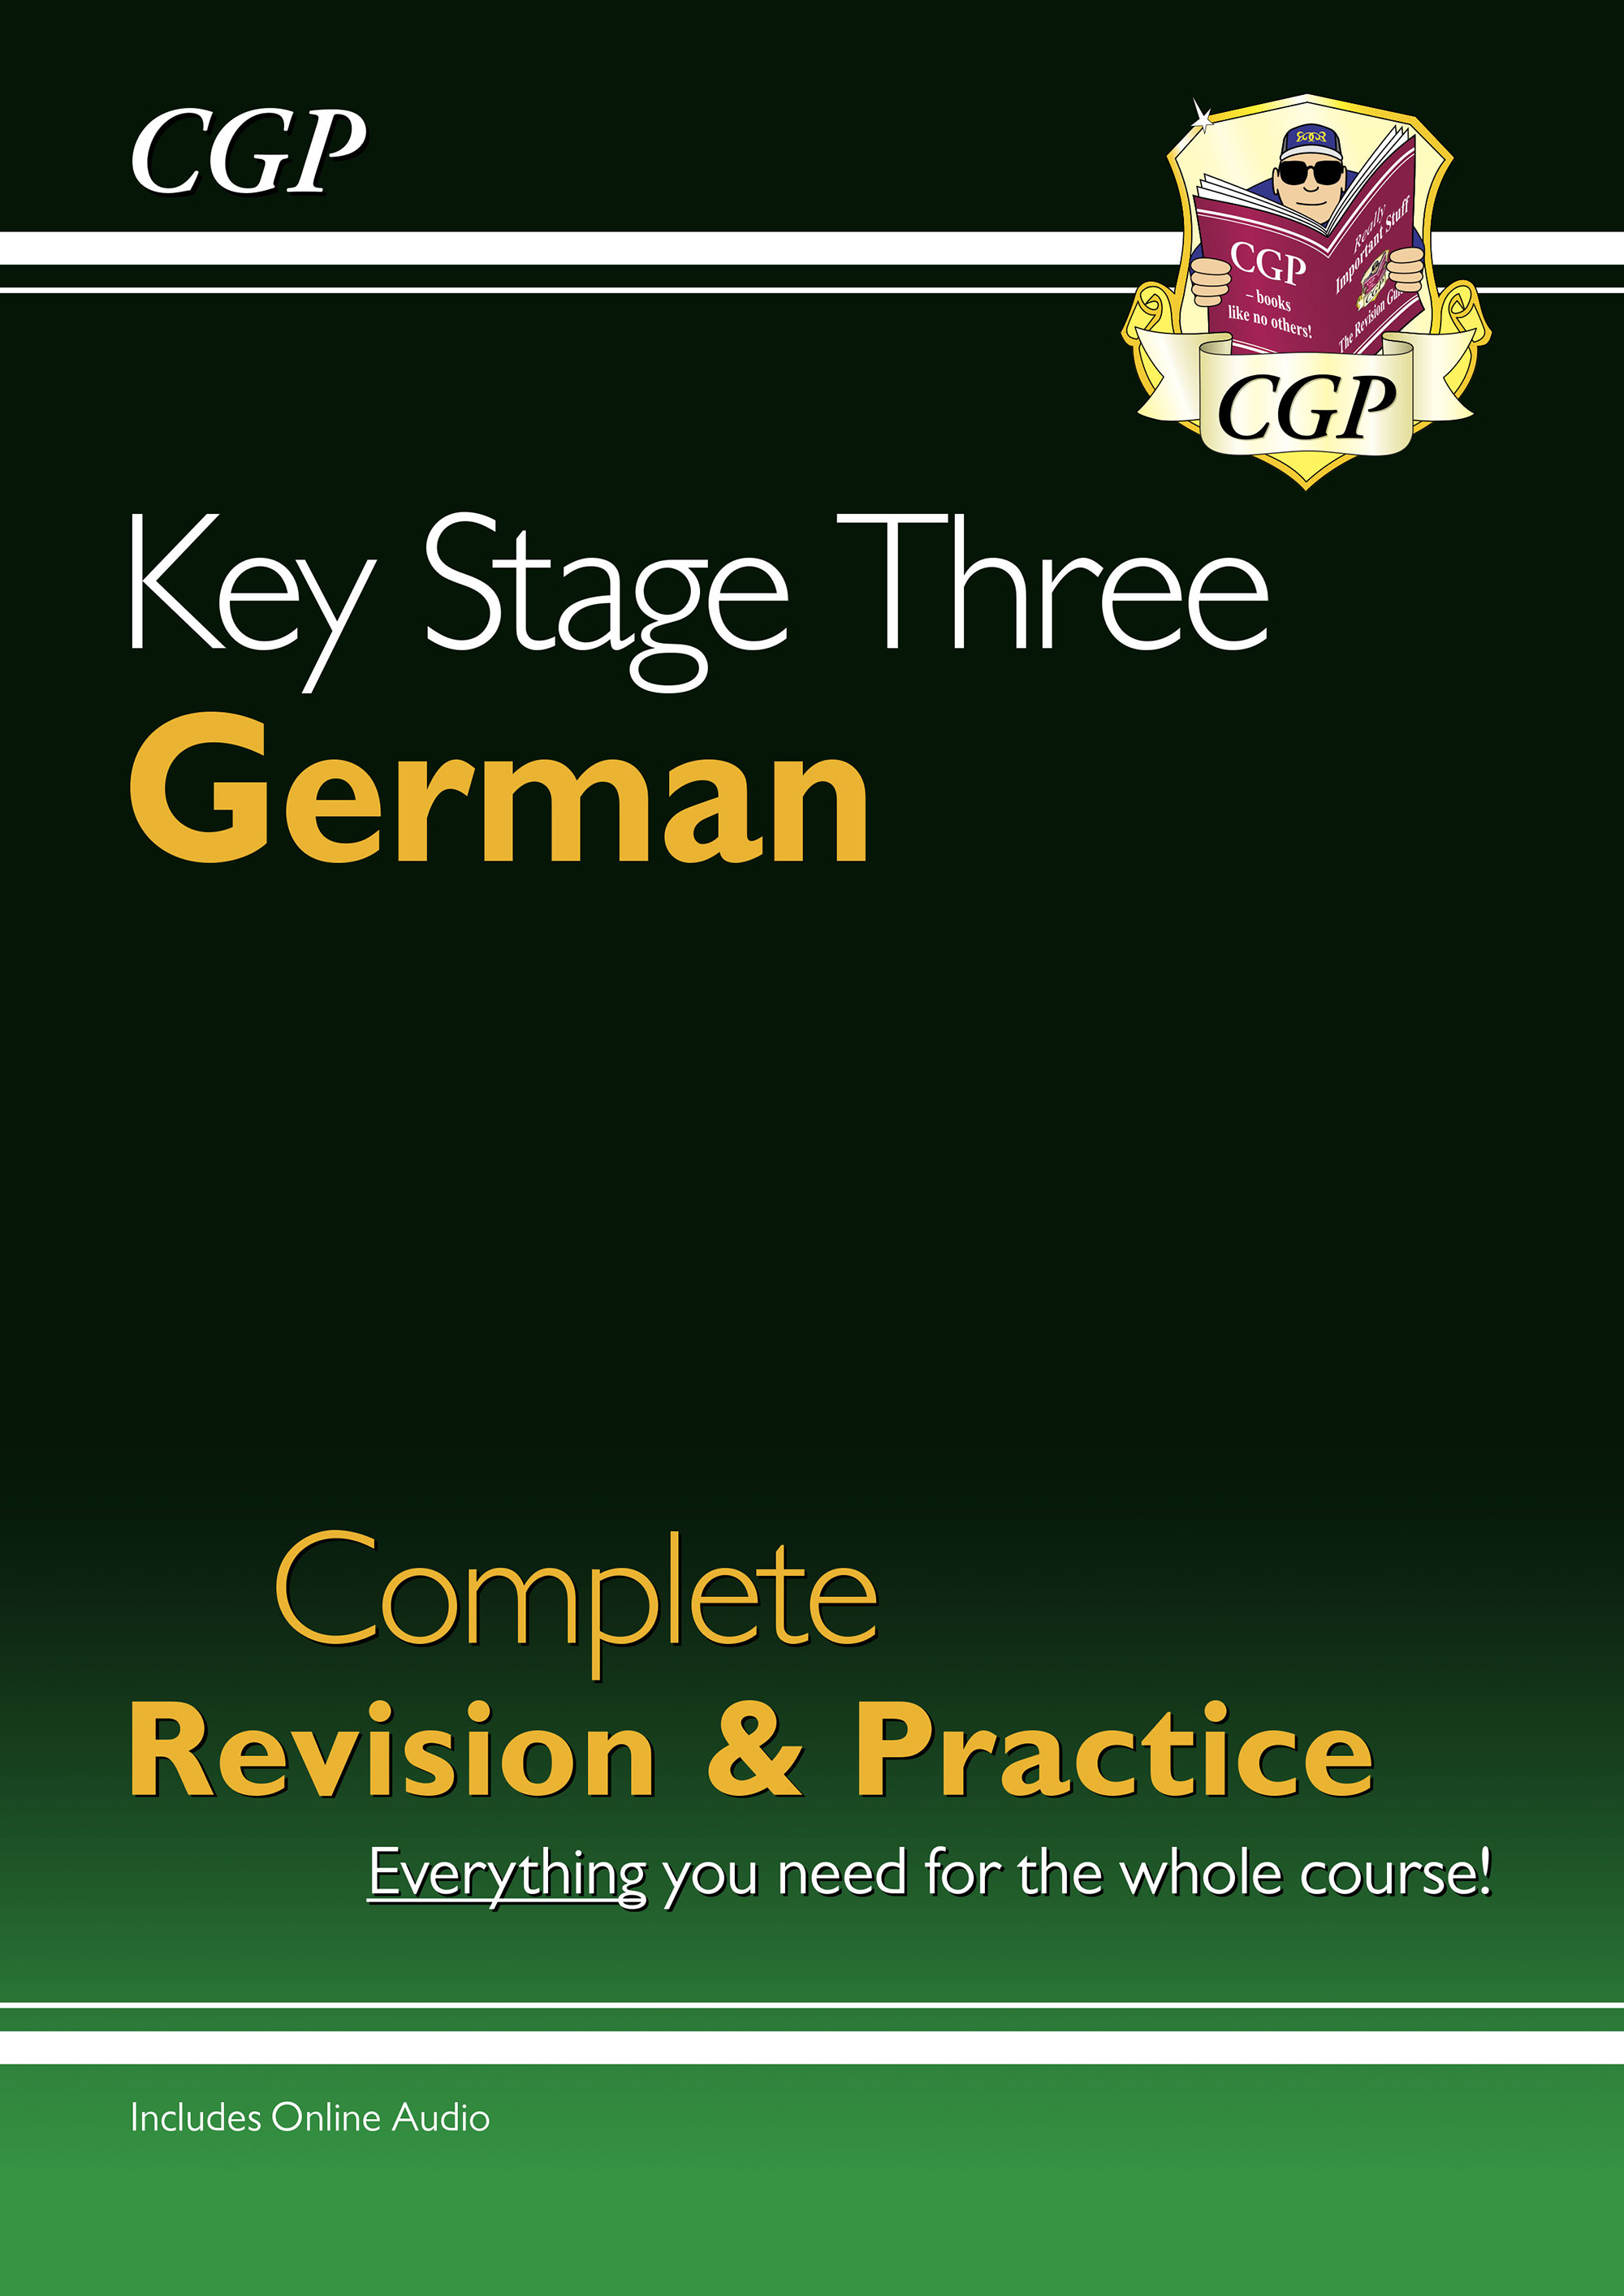 DHS32DK - New KS3 German Complete Revision & Practice with Free Online Audio